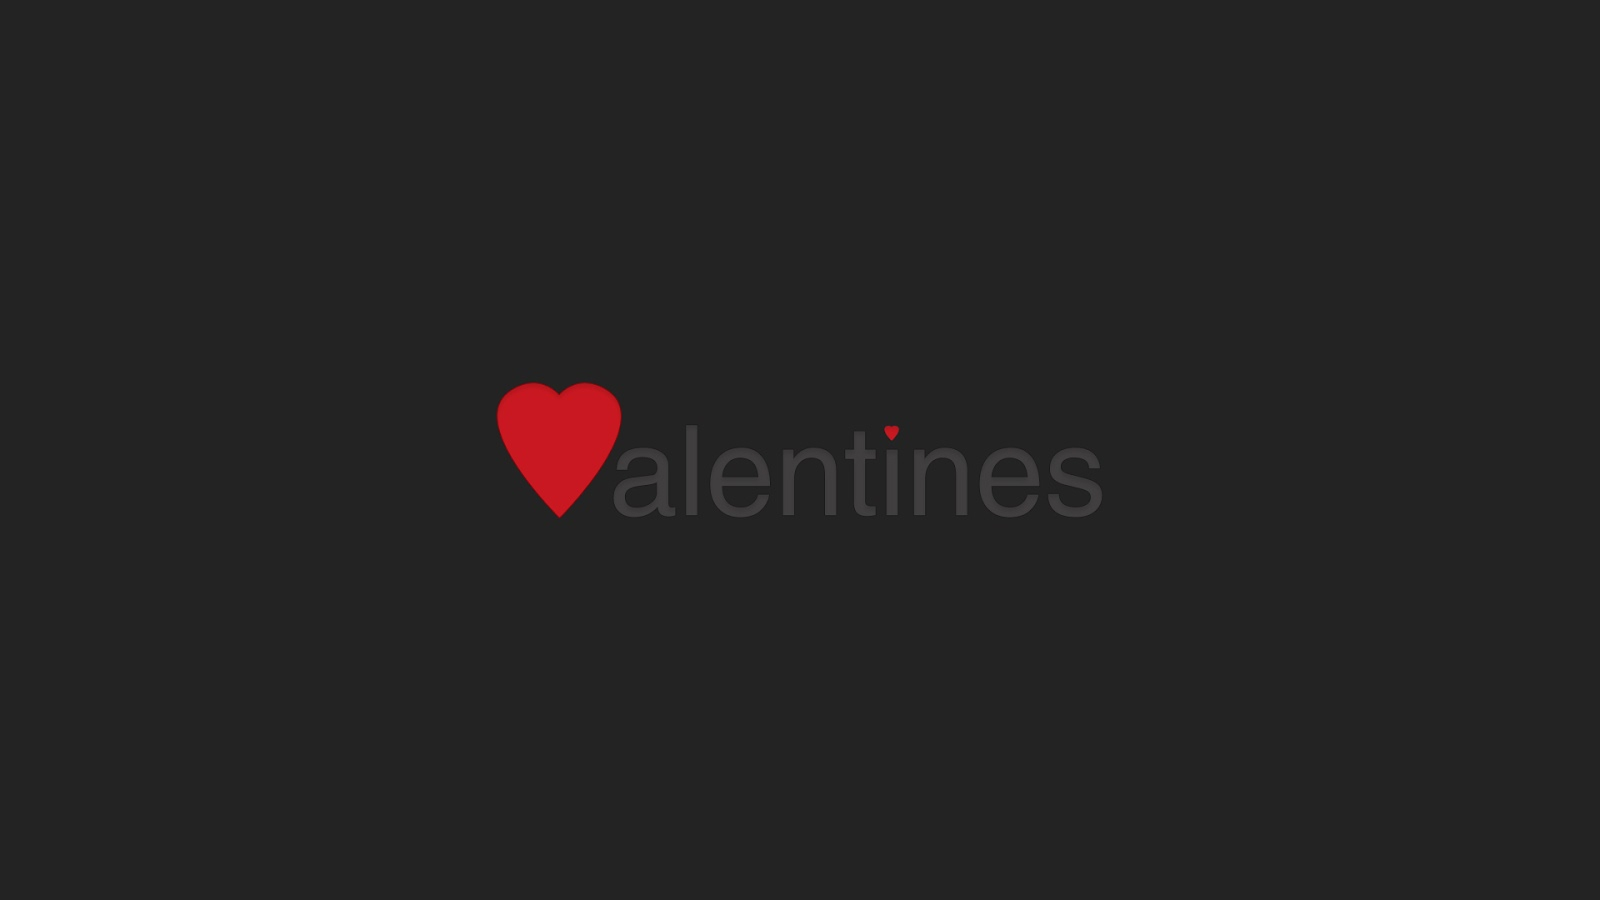 Valentines-Day-Wallpapers